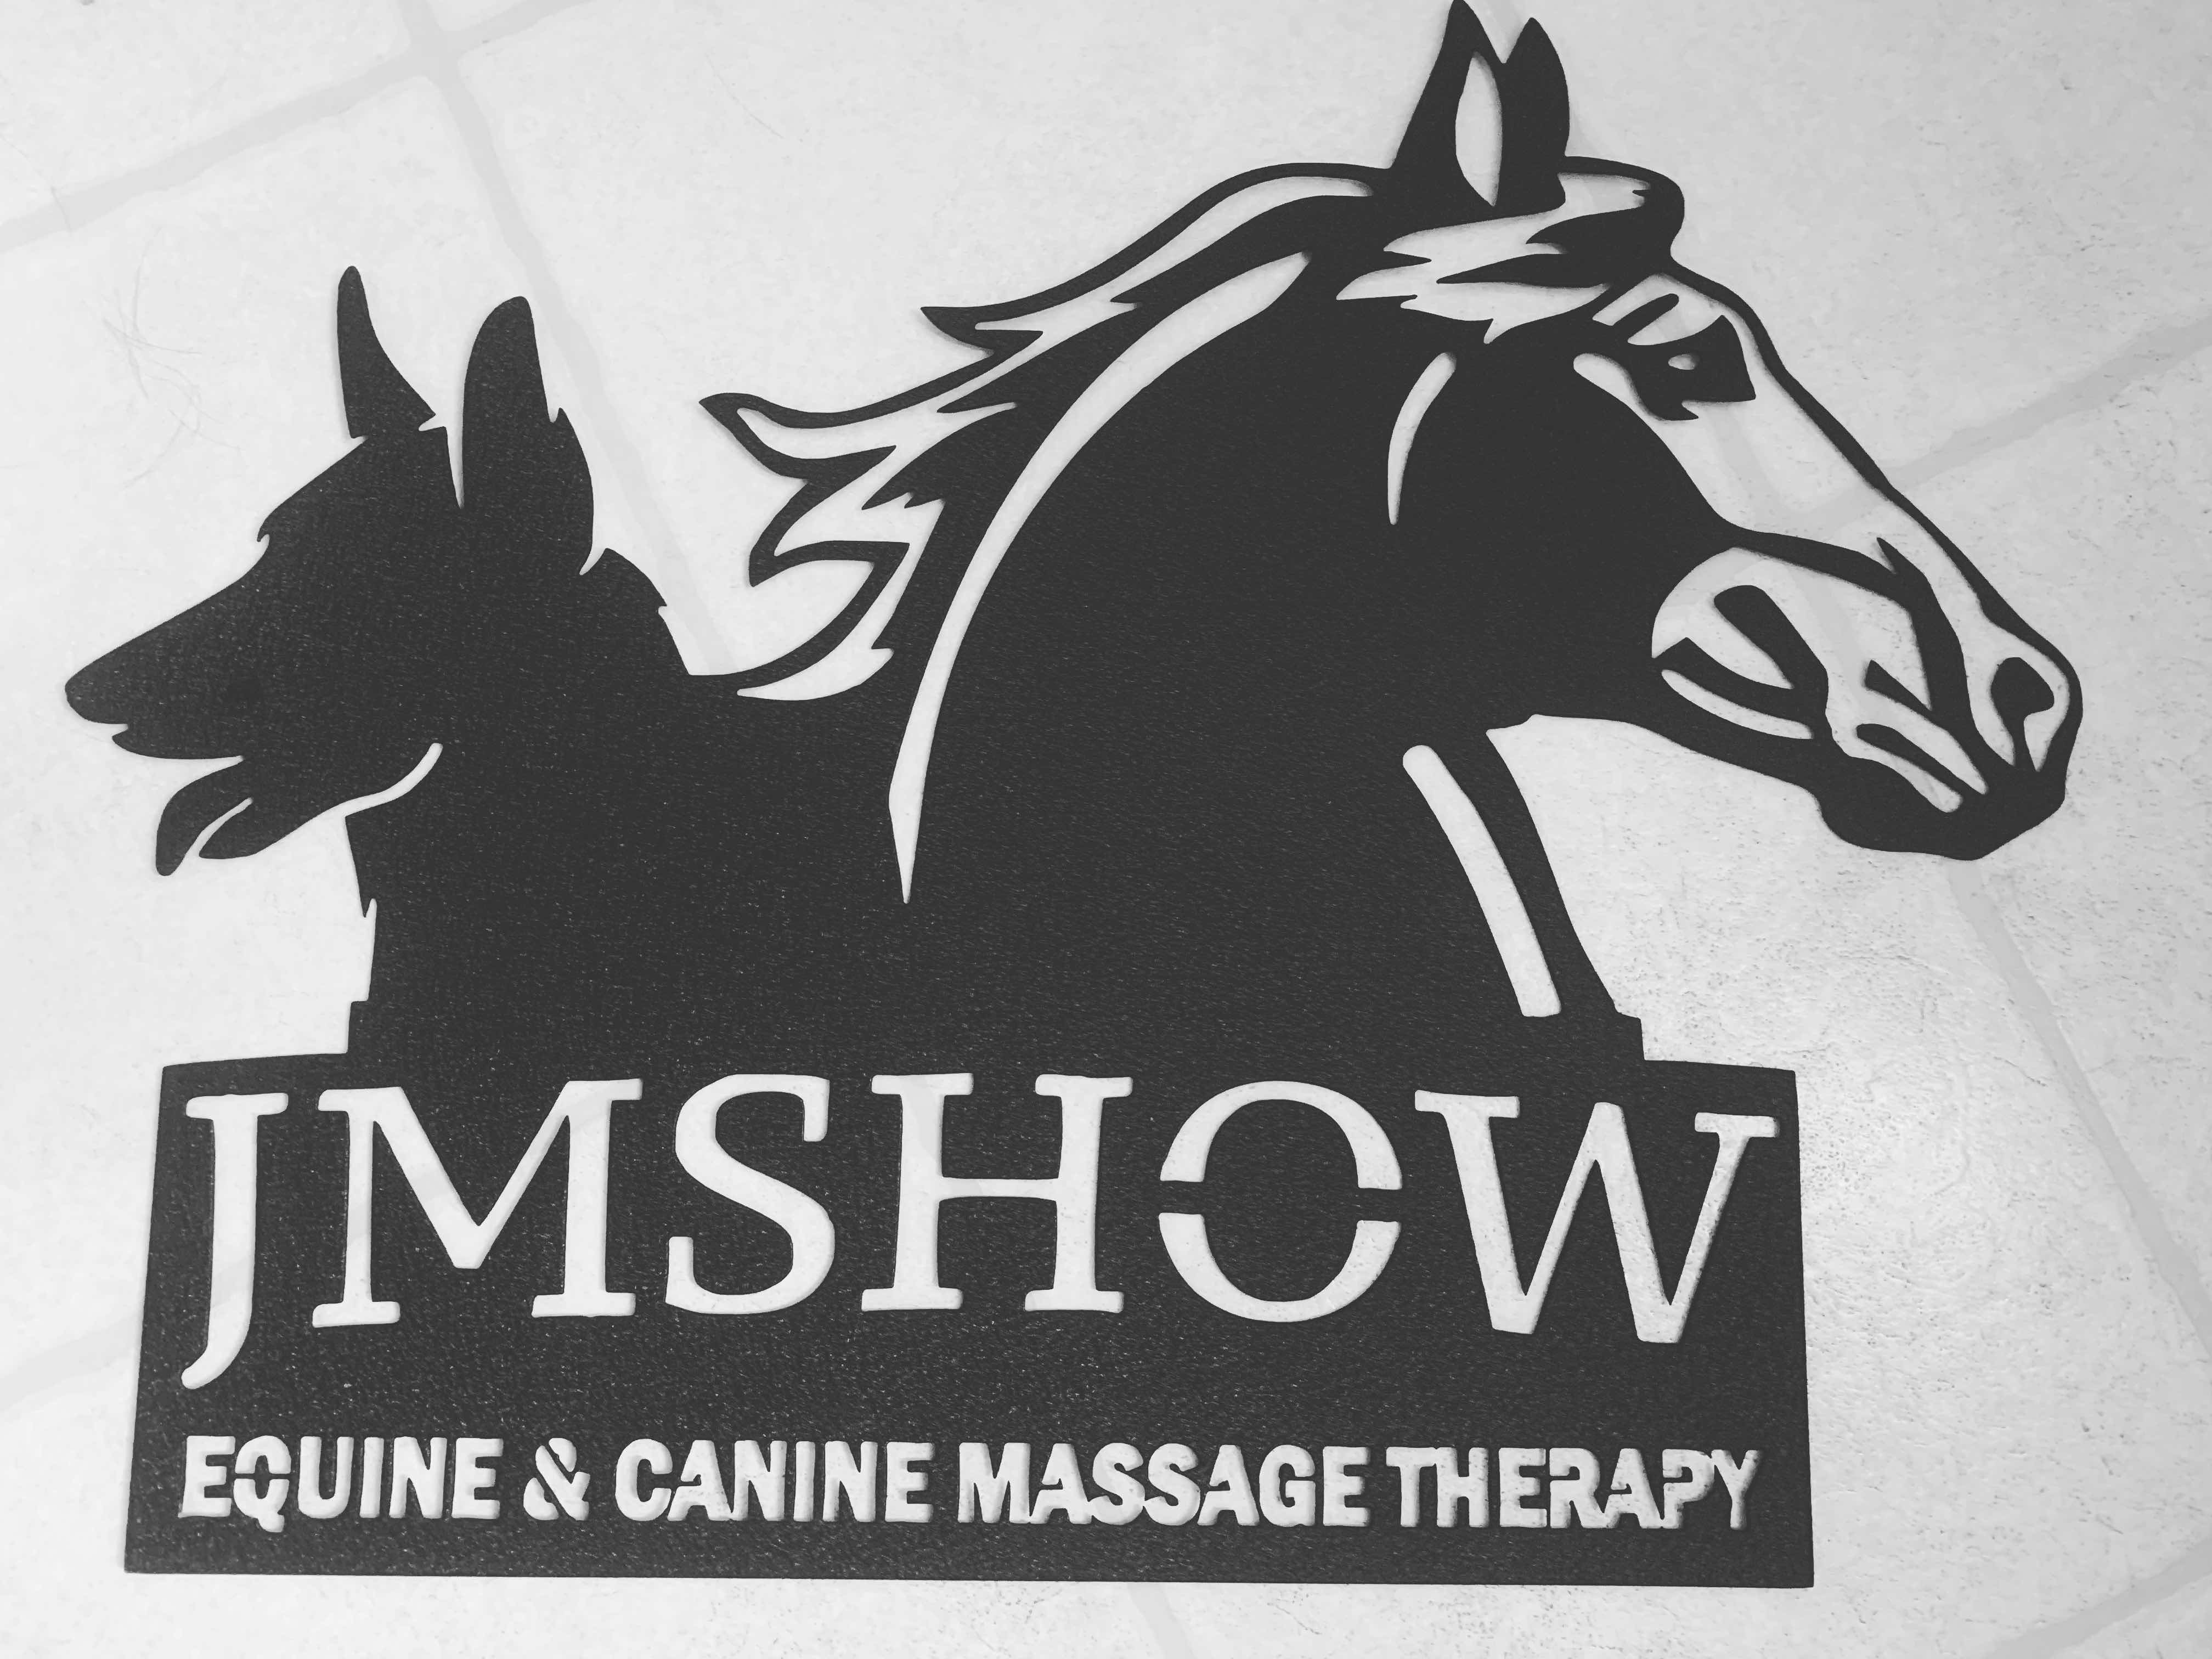 JMSHOW EQUINE MASSAGE THERAPY